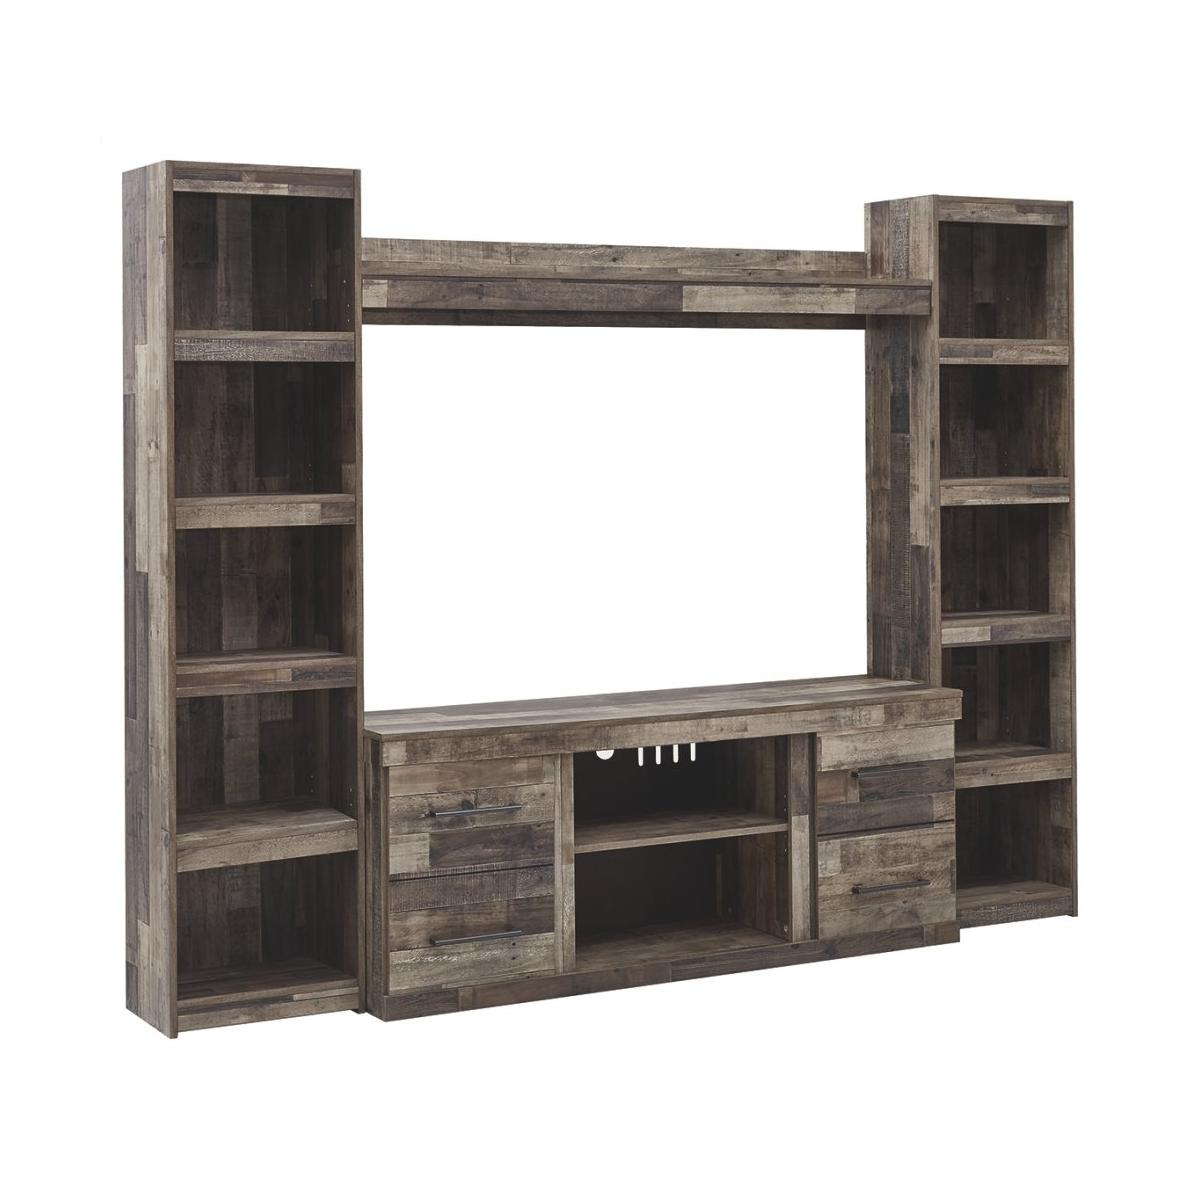 Derekson 4-piece Entertainment Center